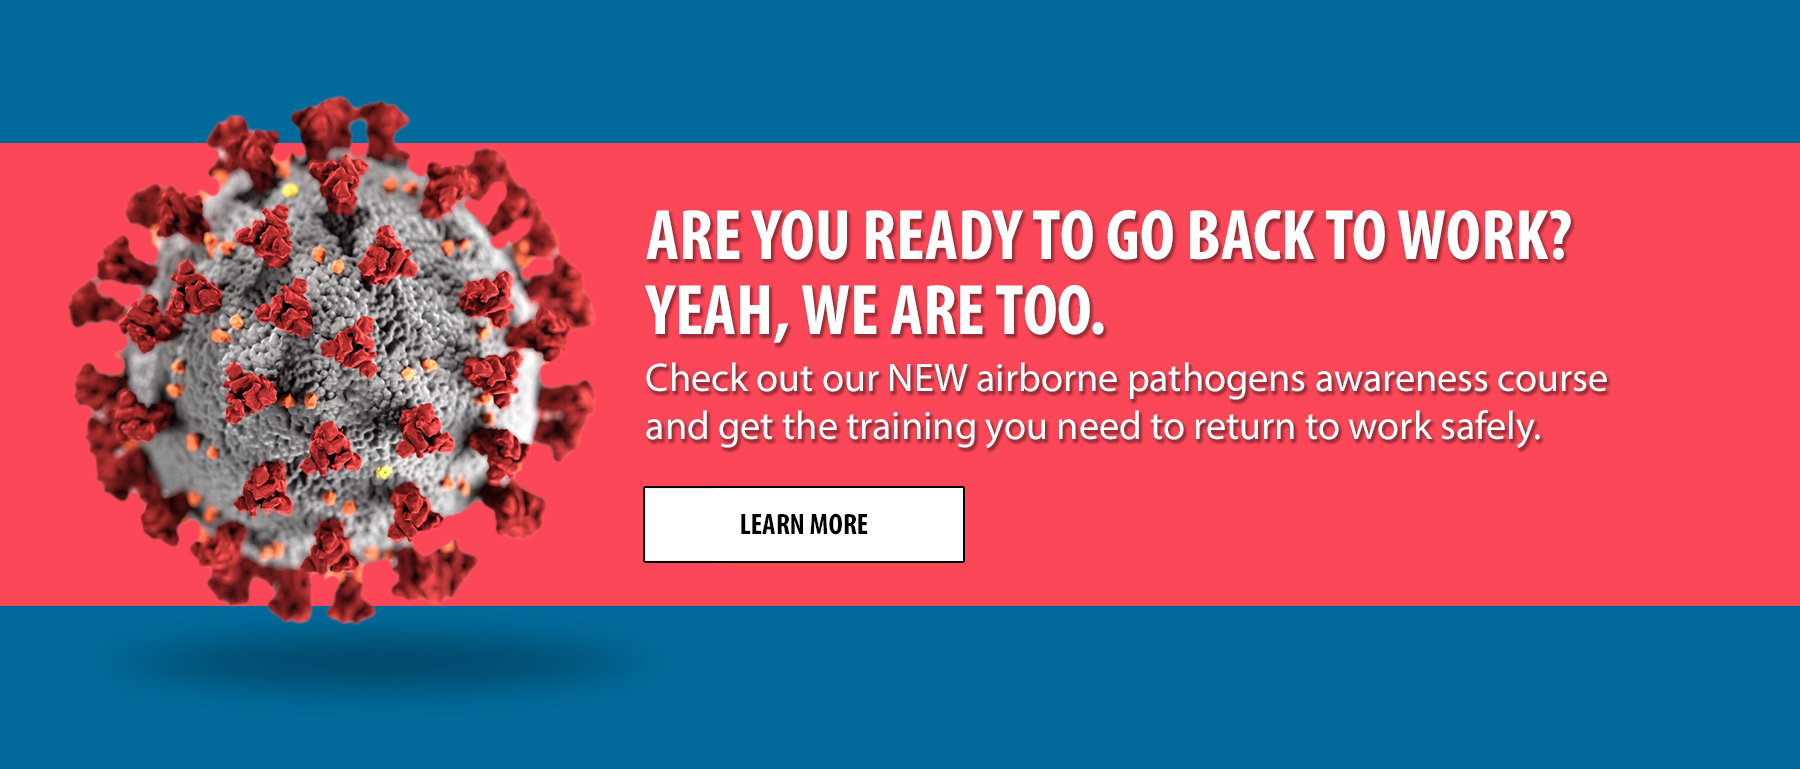 Are you ready to get back to work? Yeah, we are too. Check out our NEW airborne pathogens awareness course and get the training you need to return to work safely.